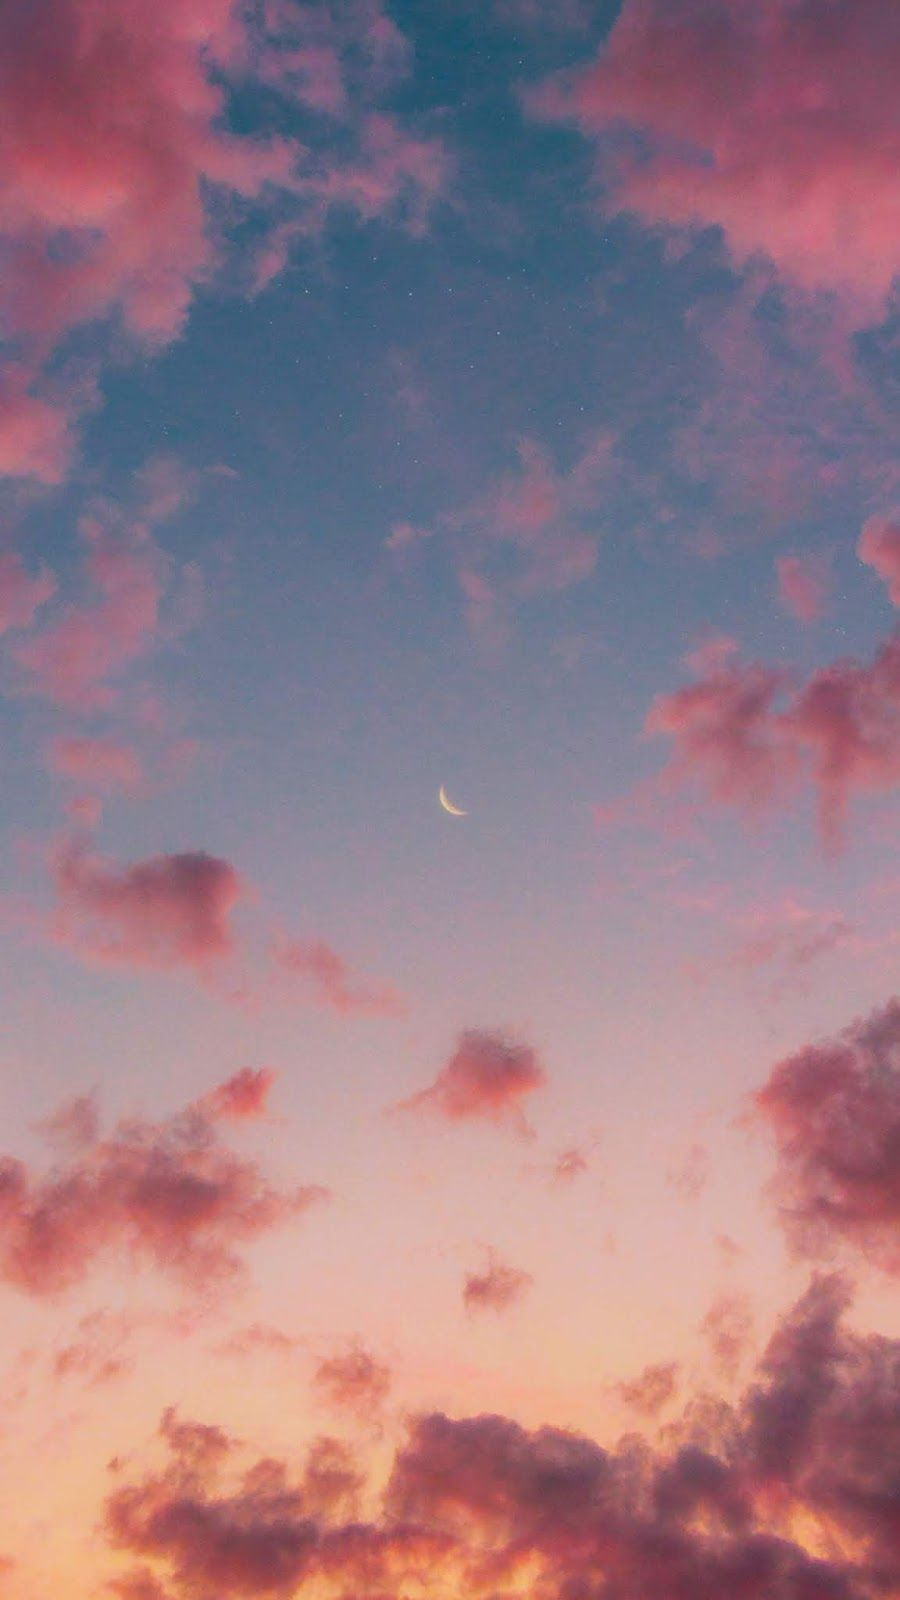 Pink Sky Aesthetic Pastel Wallpapers Top Free Pink Sky Aesthetic Pastel Backgrounds Wallpaperaccess